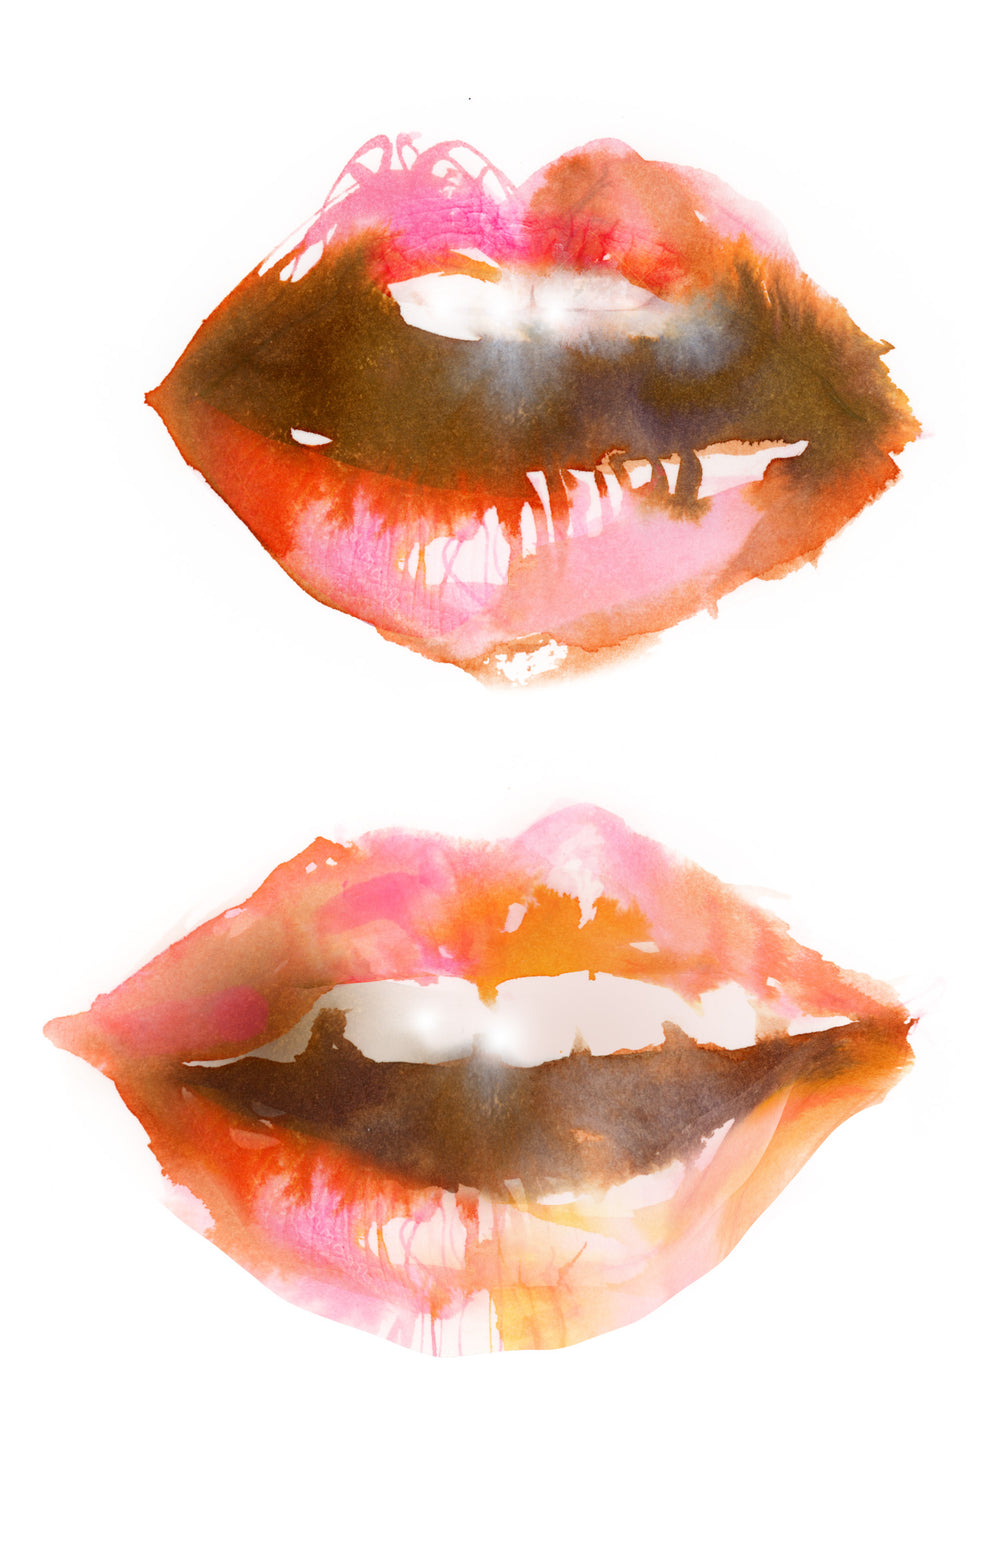 Watercolor illustration, watercolor painting portrait fashion lips illustration by Marta Spendowska